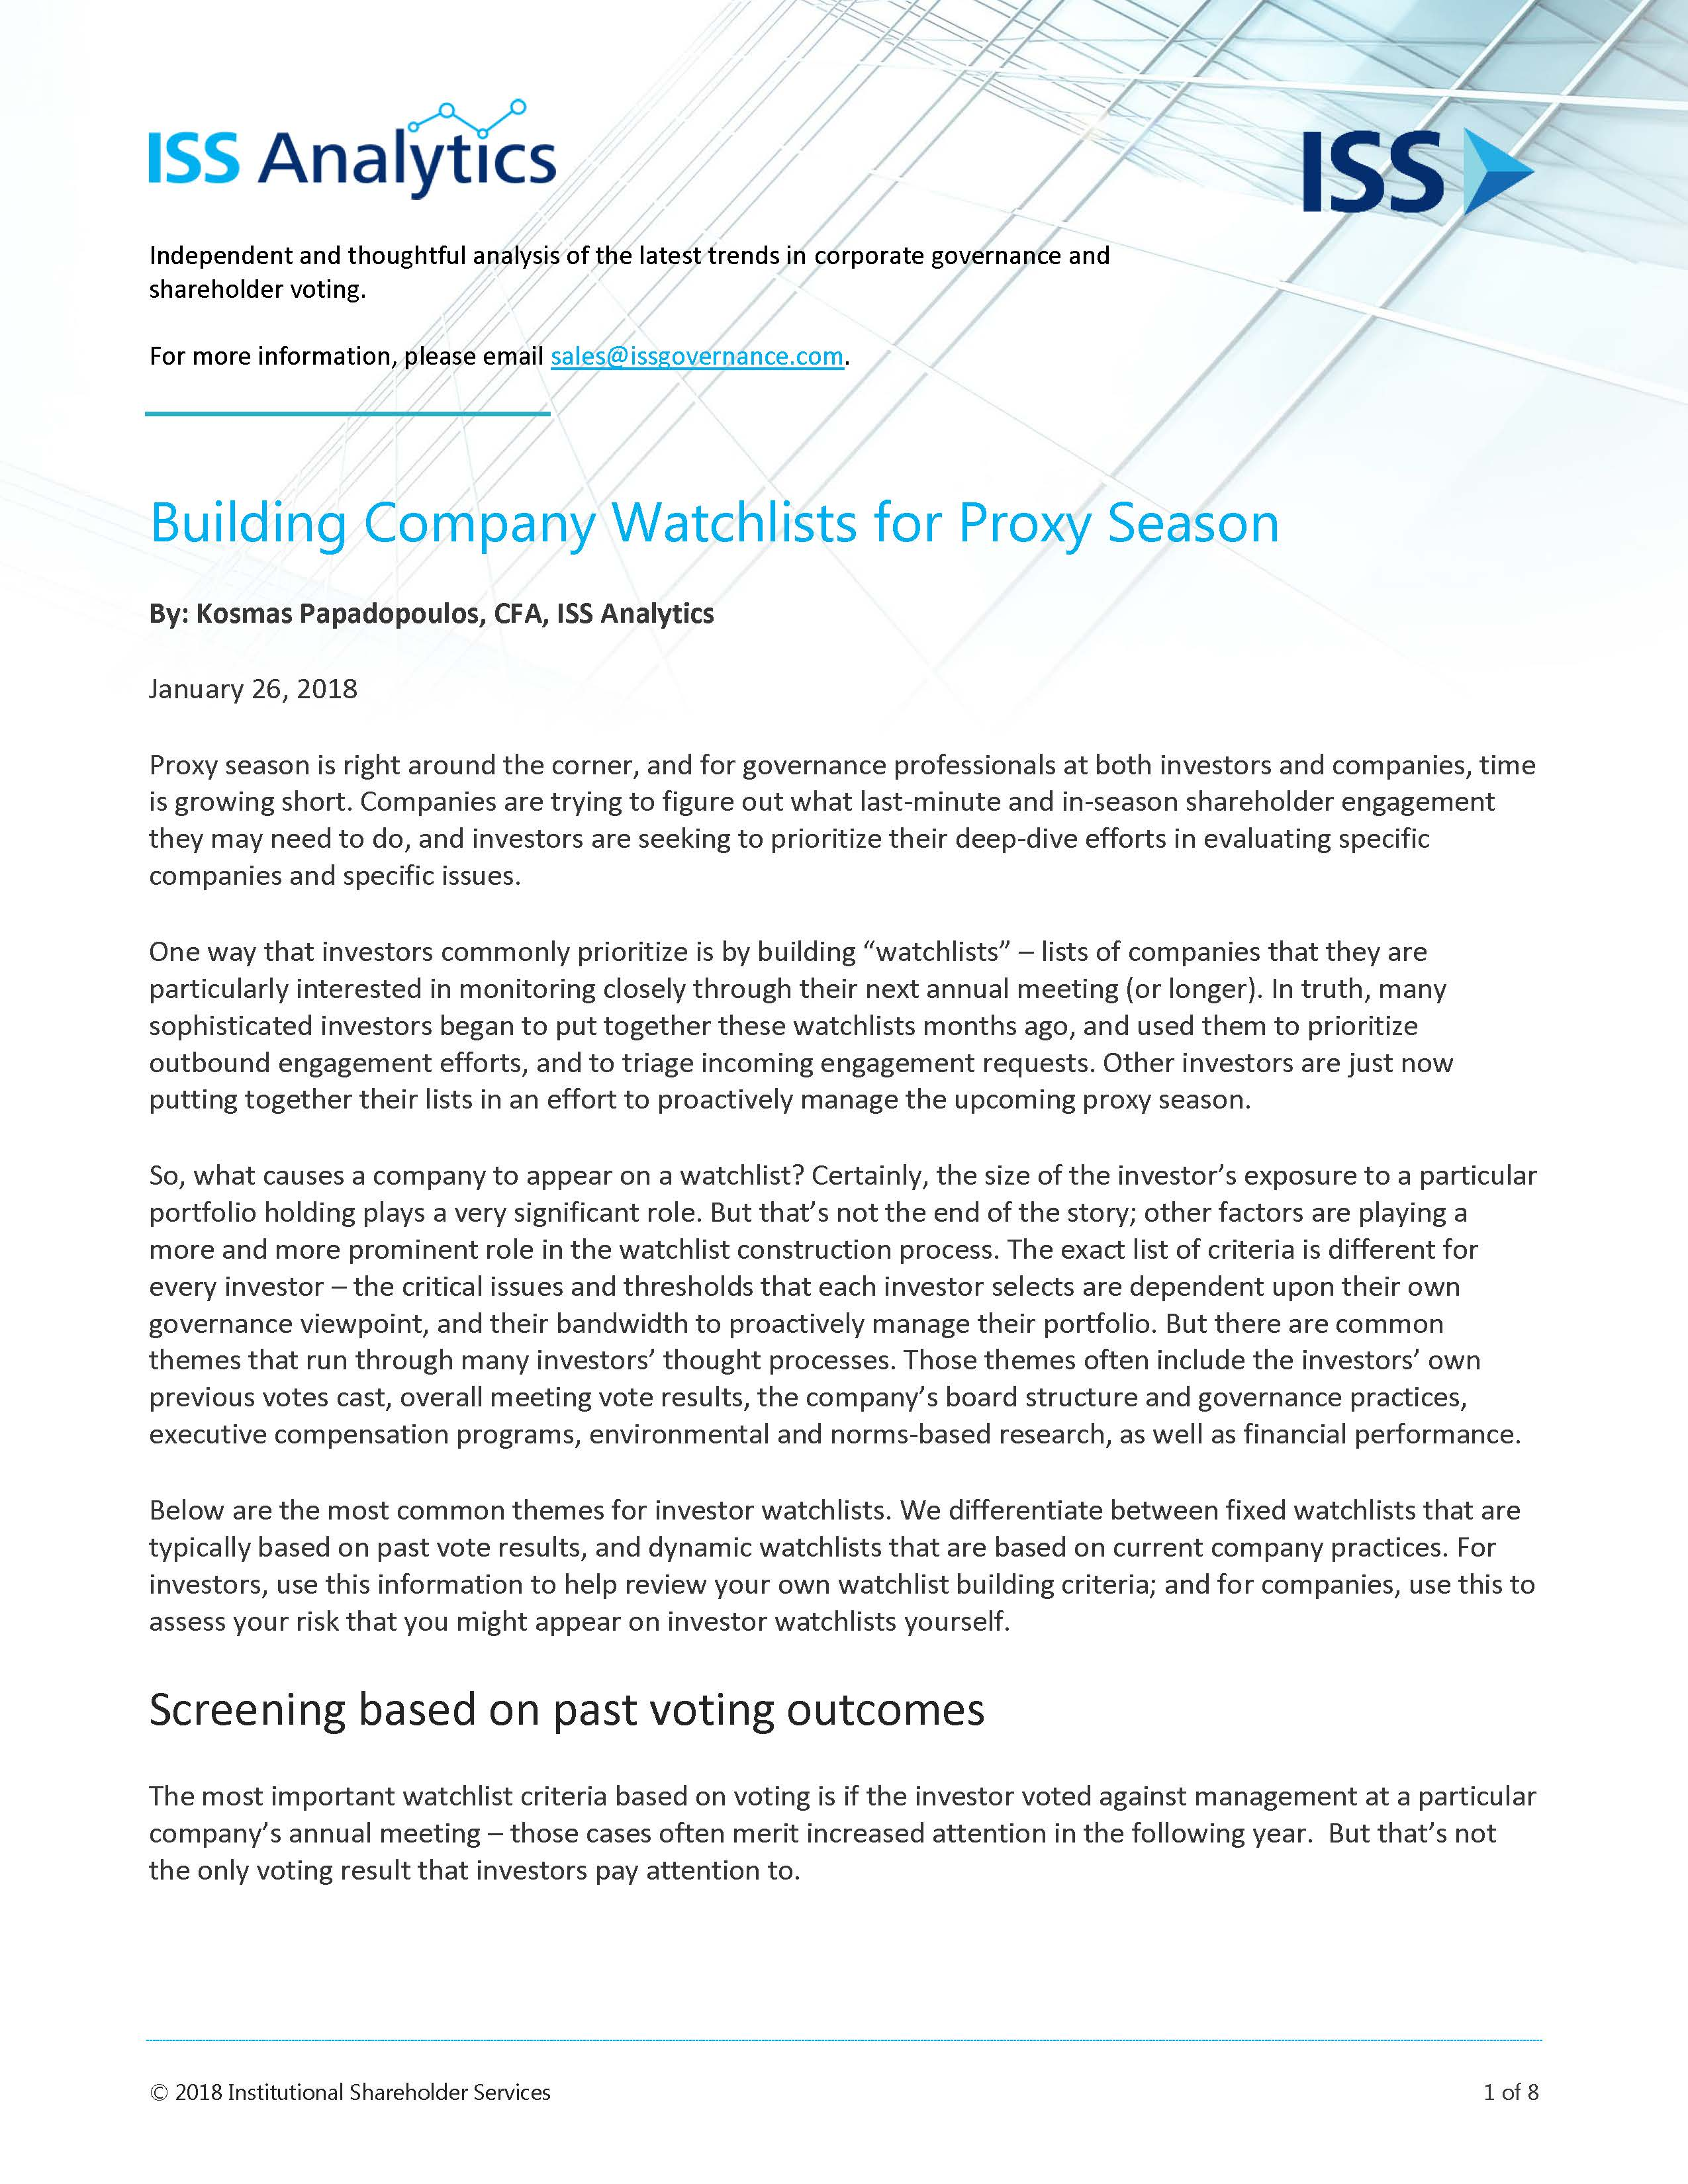 building-company-watchlists-for-proxy-season_page_1